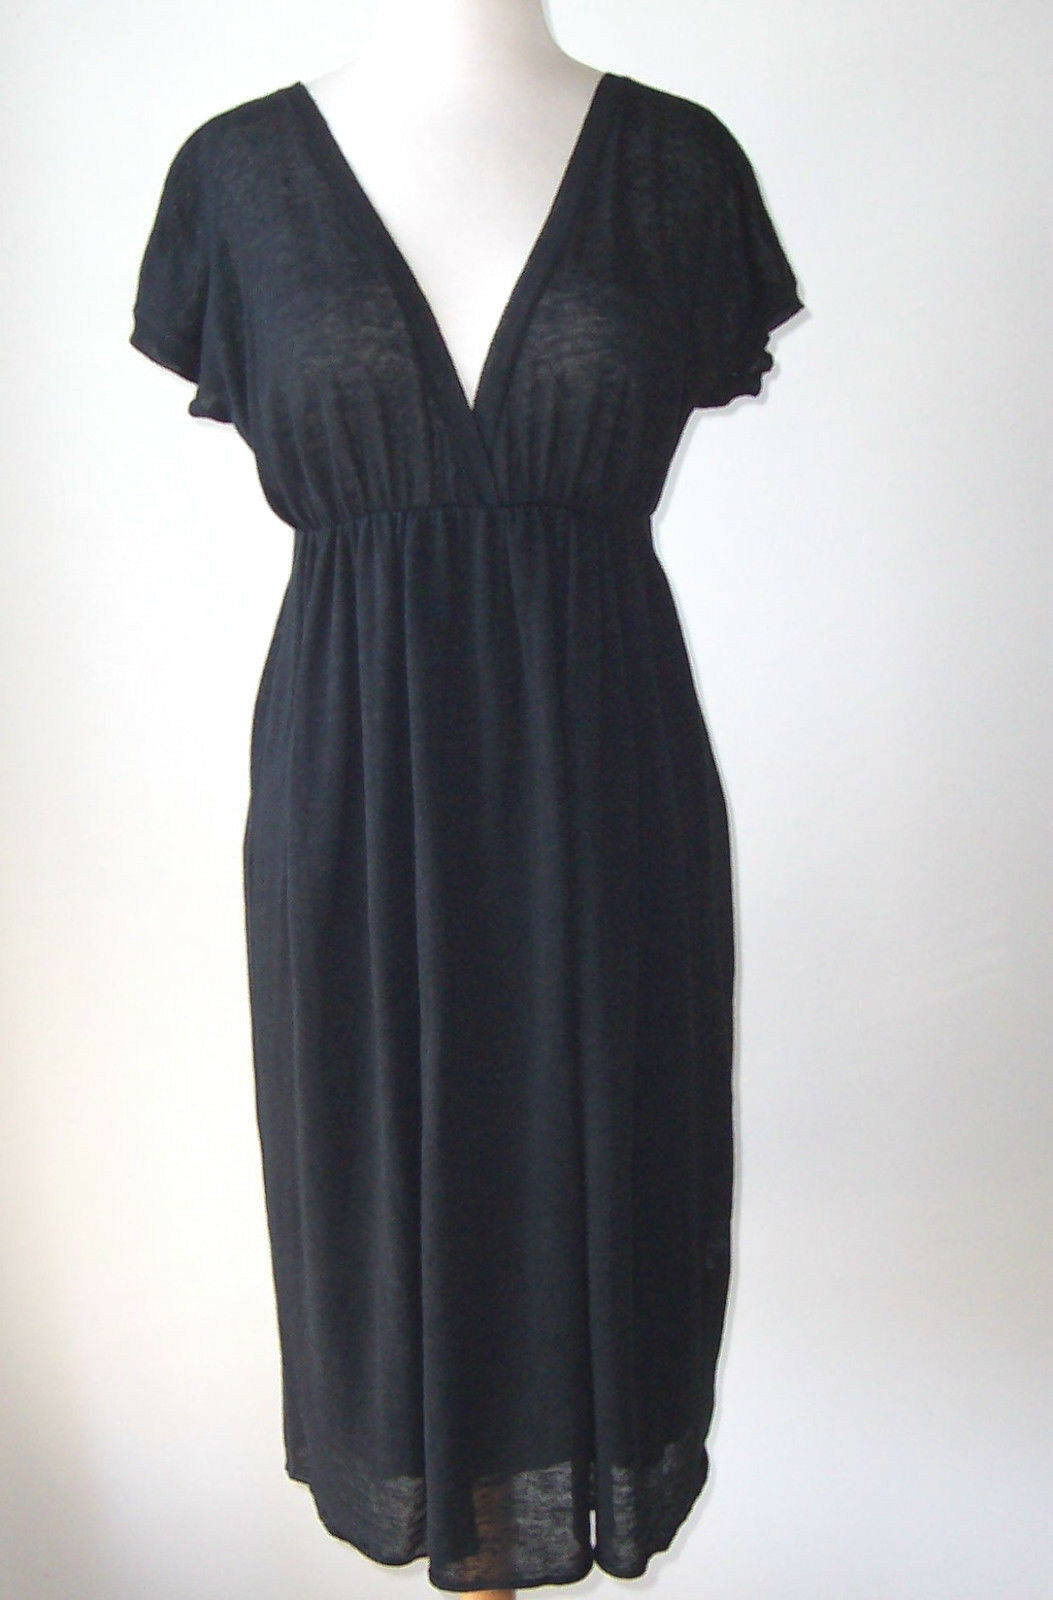 GIAMBATTISTA VALLI Dark Grey Linen Silk Knit Dress M L